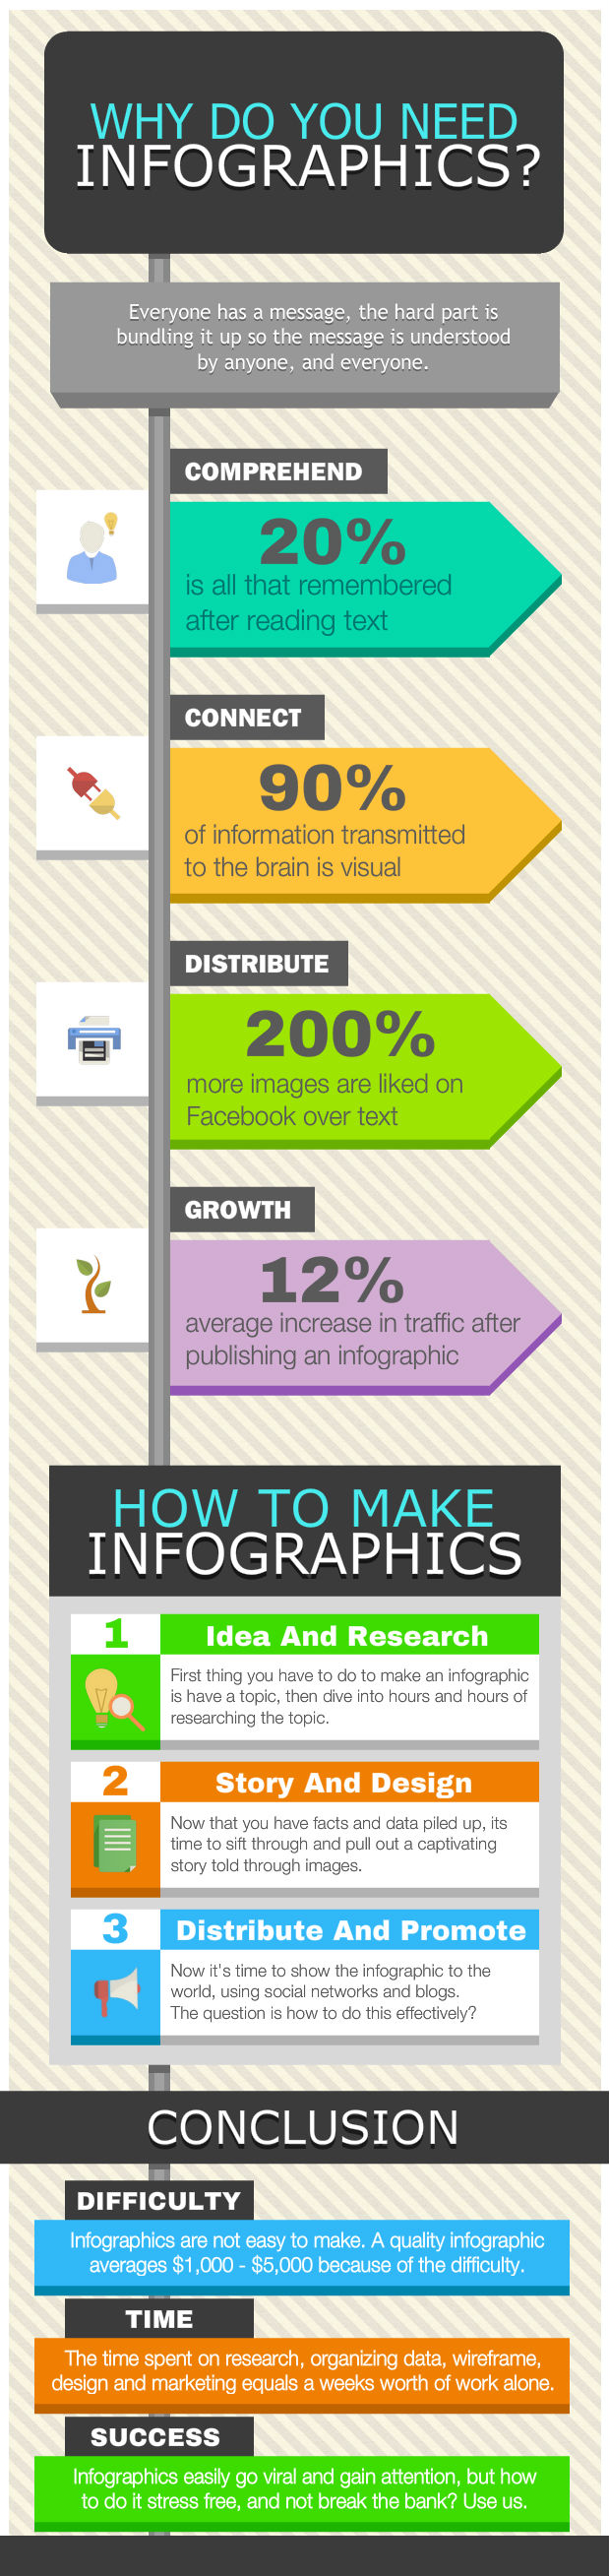 benefits-of-infographics